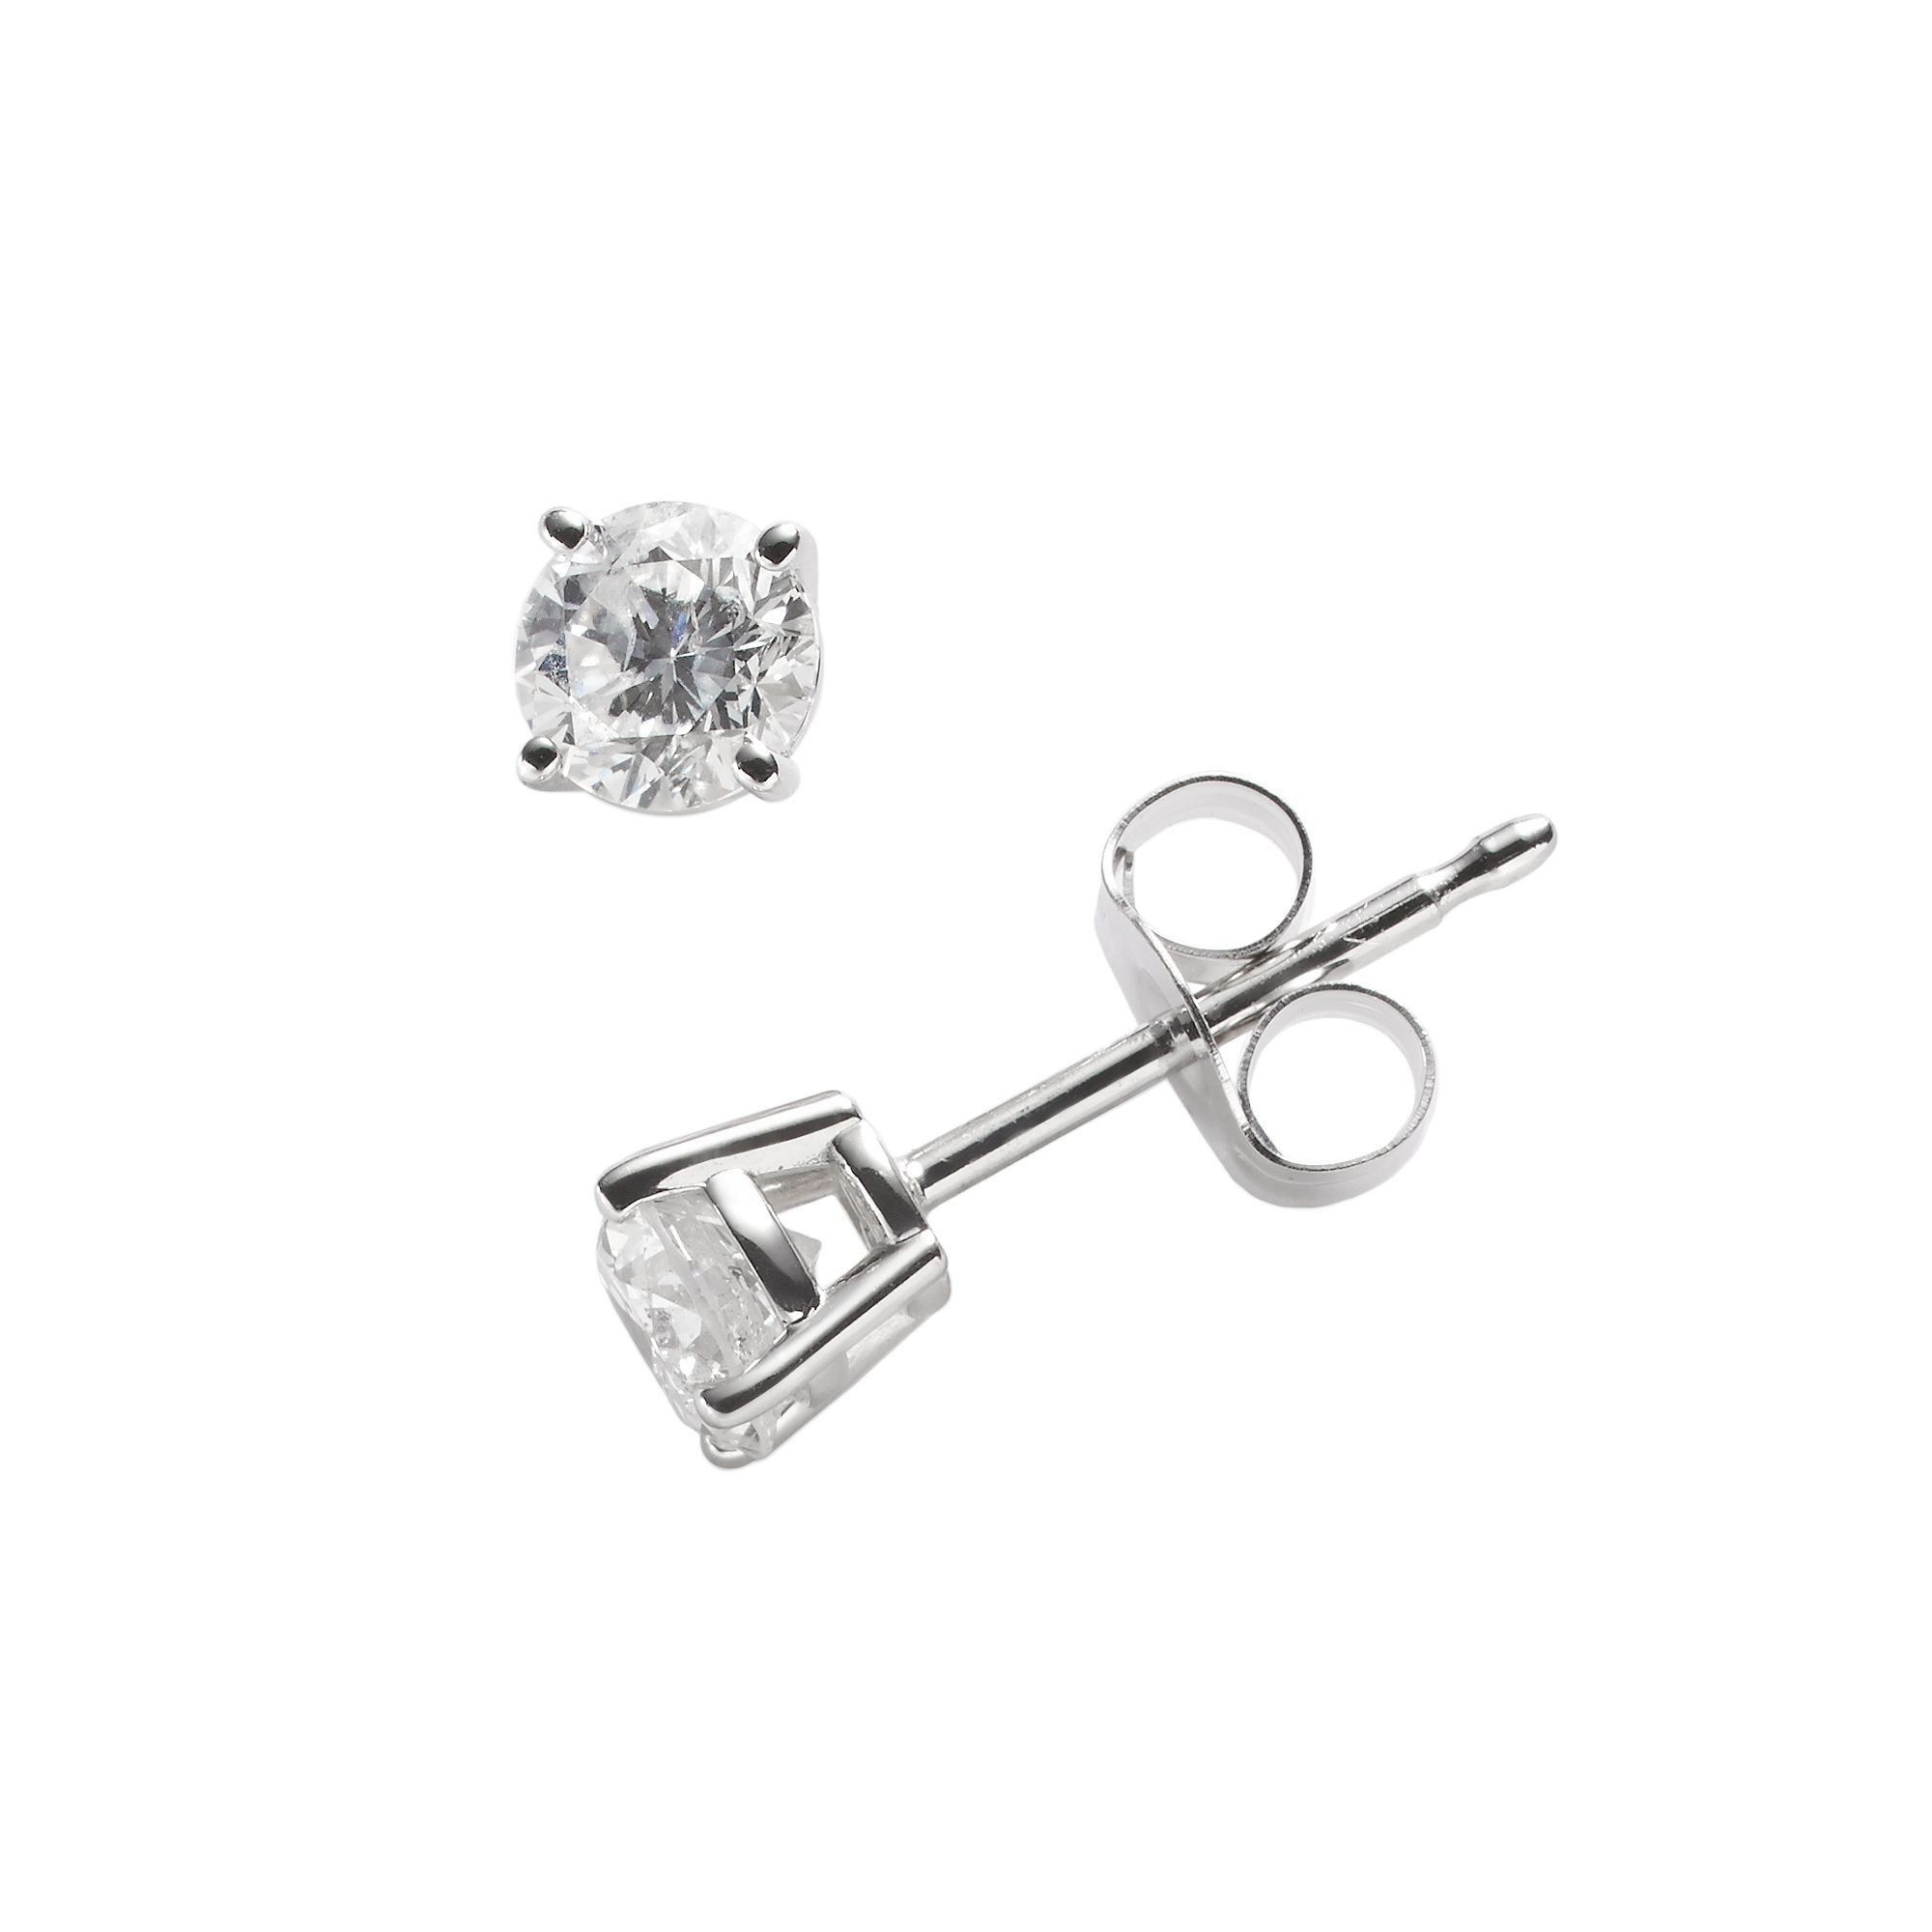 earrings carat swarovski stud zirconia a sterling silver solitaire swarovskr